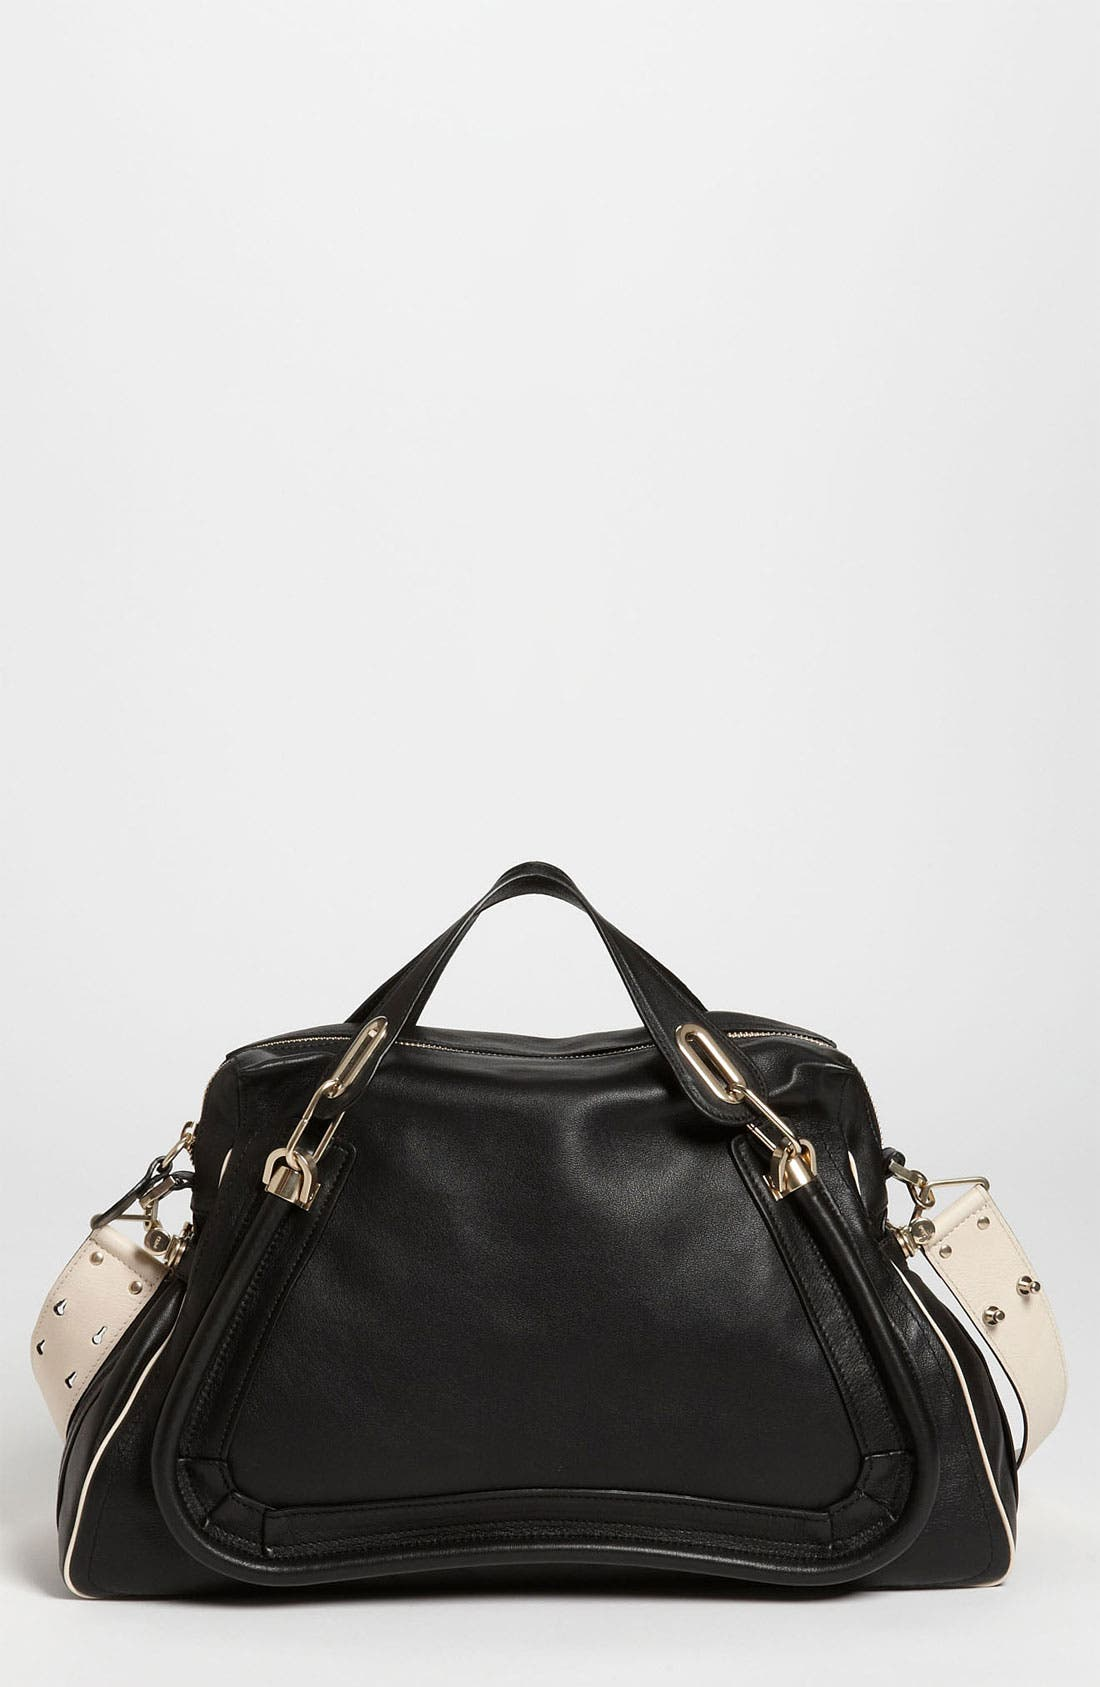 Alternate Image 1 Selected - Chloé 'Military Paraty - Large' Leather Satchel